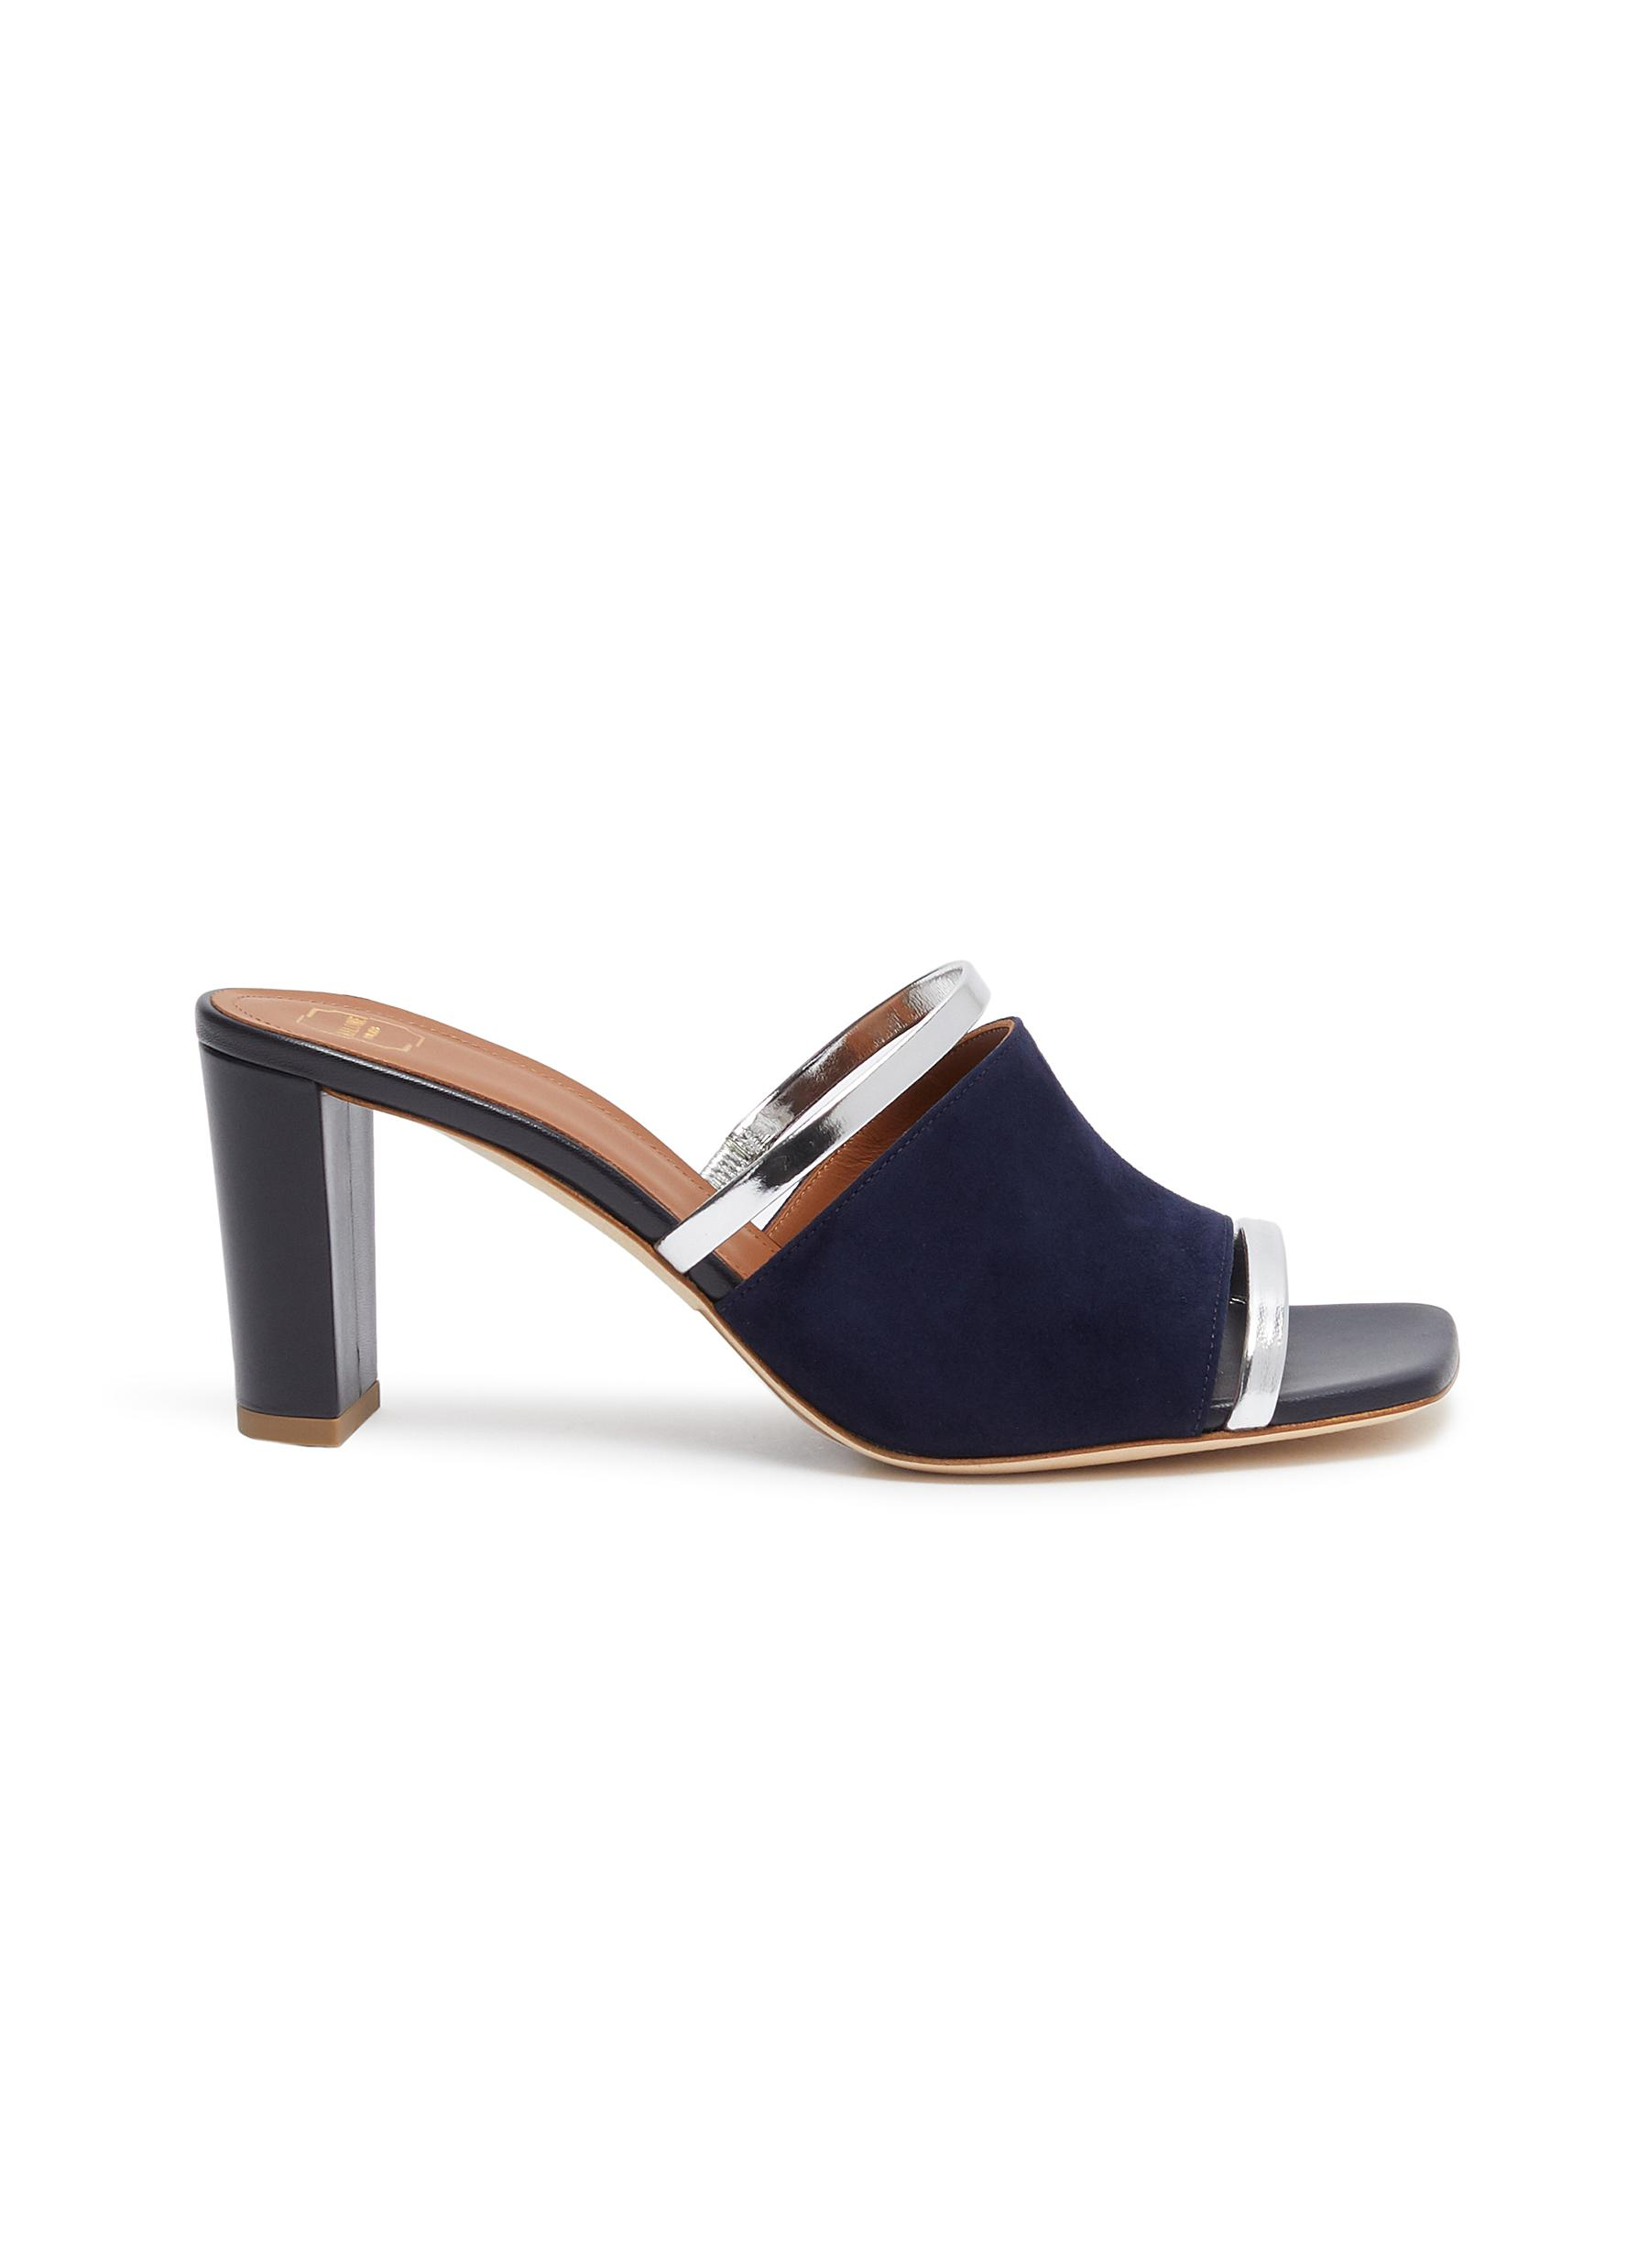 Demi strappy suede sandals by Malone Souliers